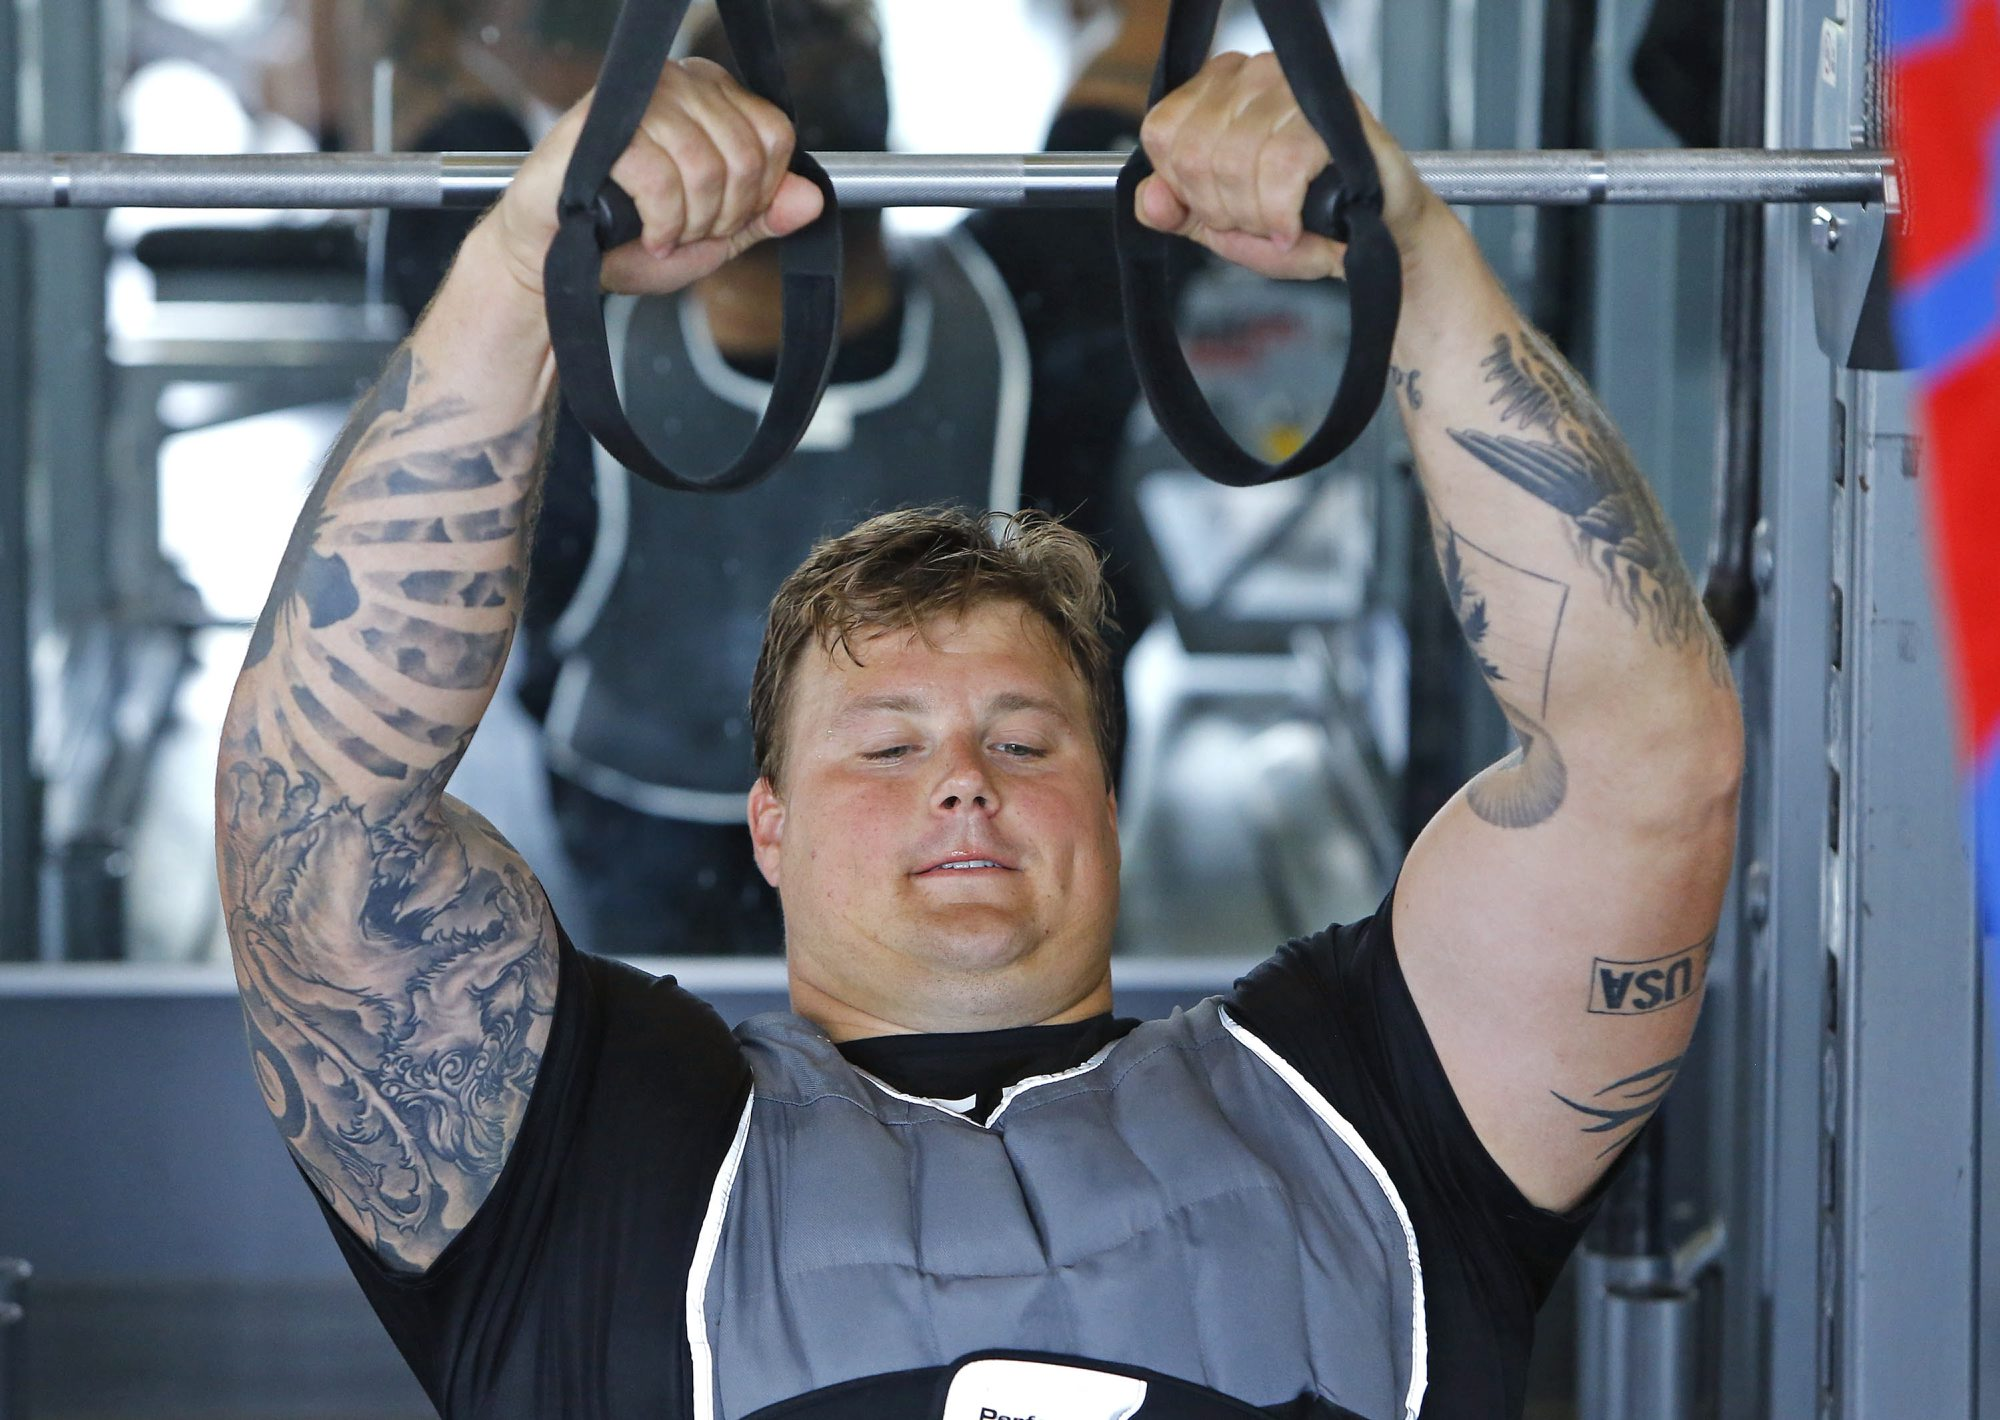 Buffalo Bills guard Richie Incognito works out with other athletes Thursday, March 3, 2016 at Exos in Phoenix, Ariz.